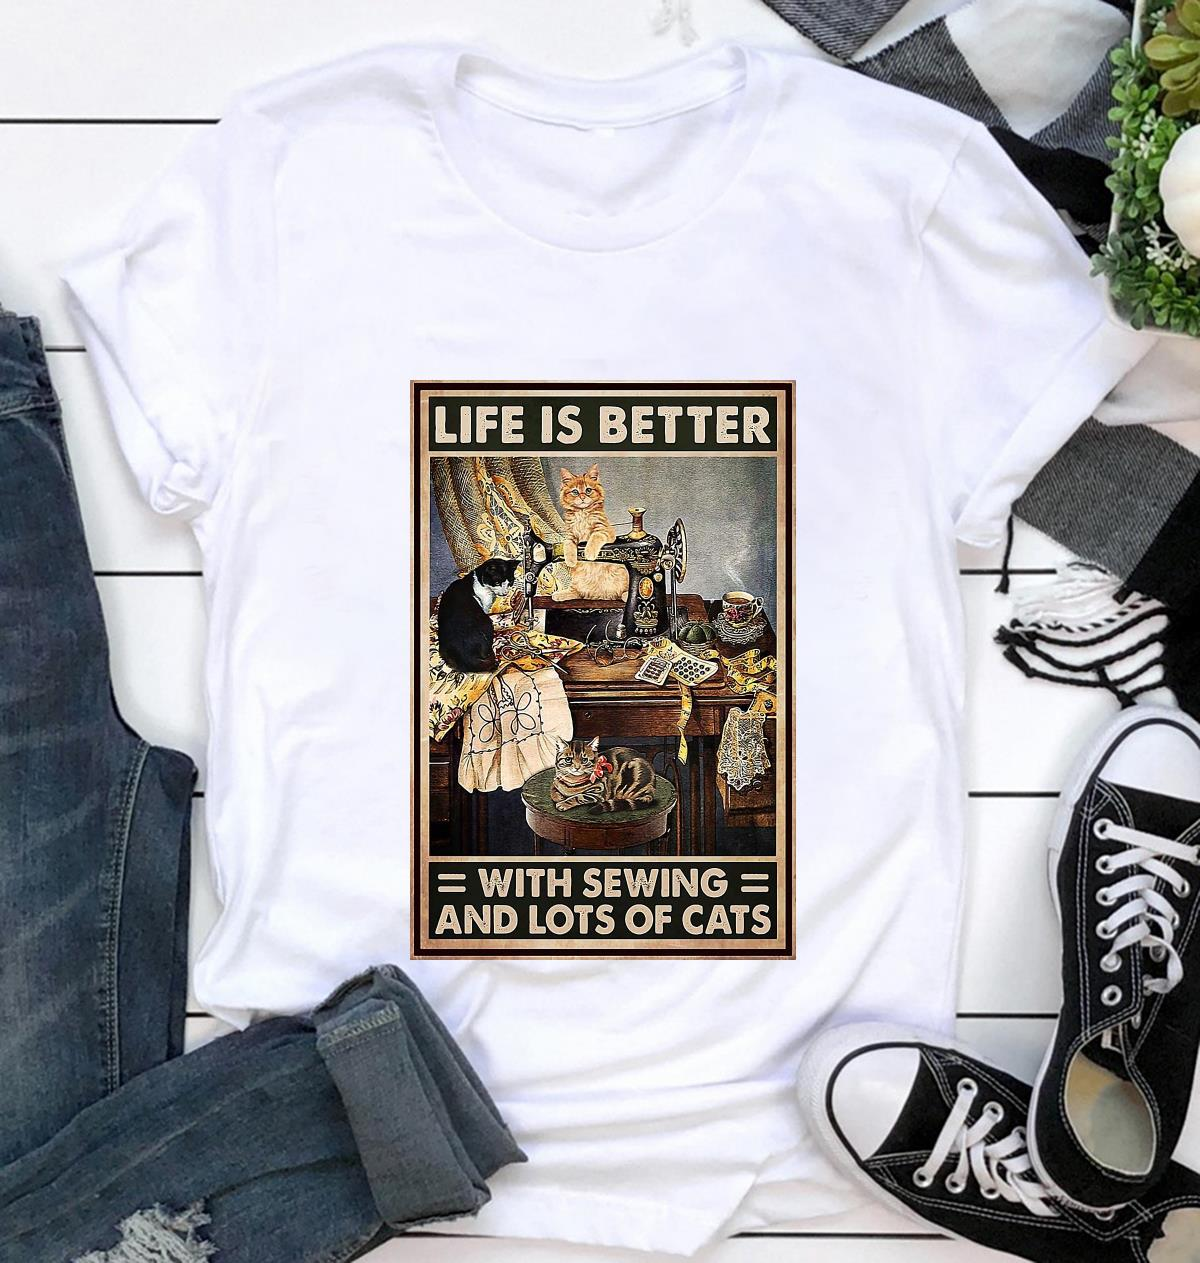 Life is better with sewing and lots of cats poster t-shirt